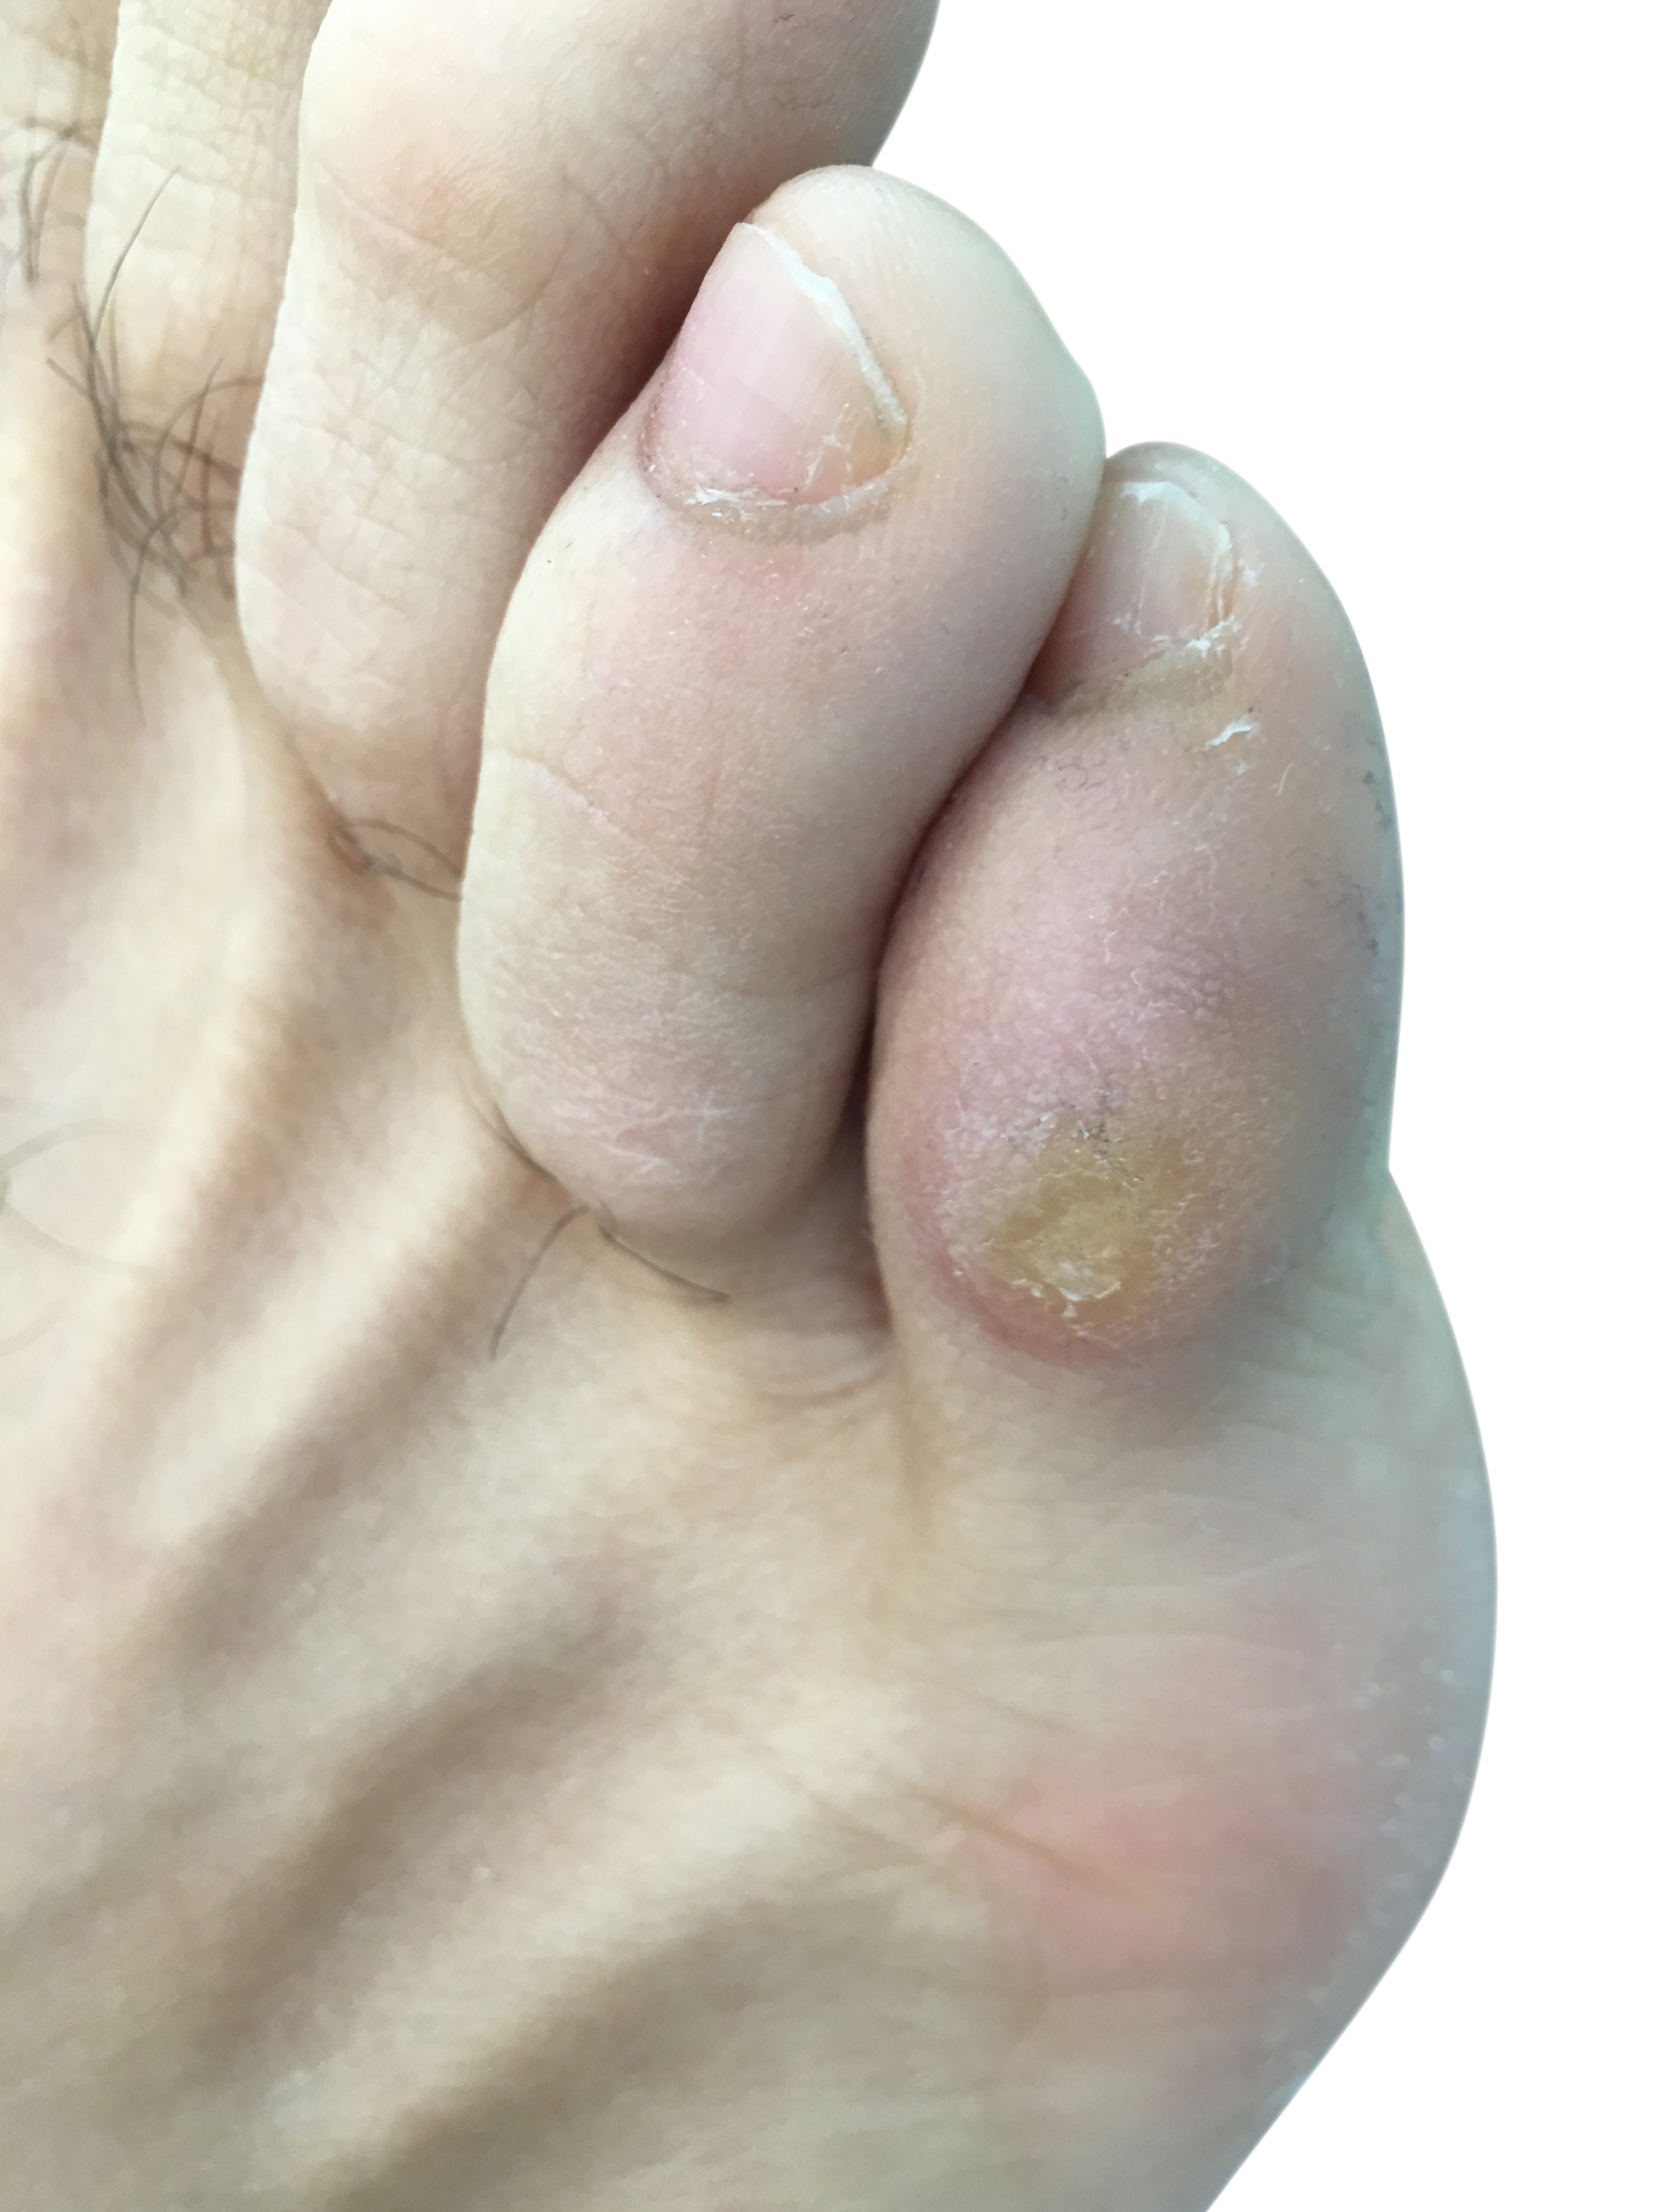 http://dubaipodiatry.com/wp-content/uploads/2018/01/1.jpg